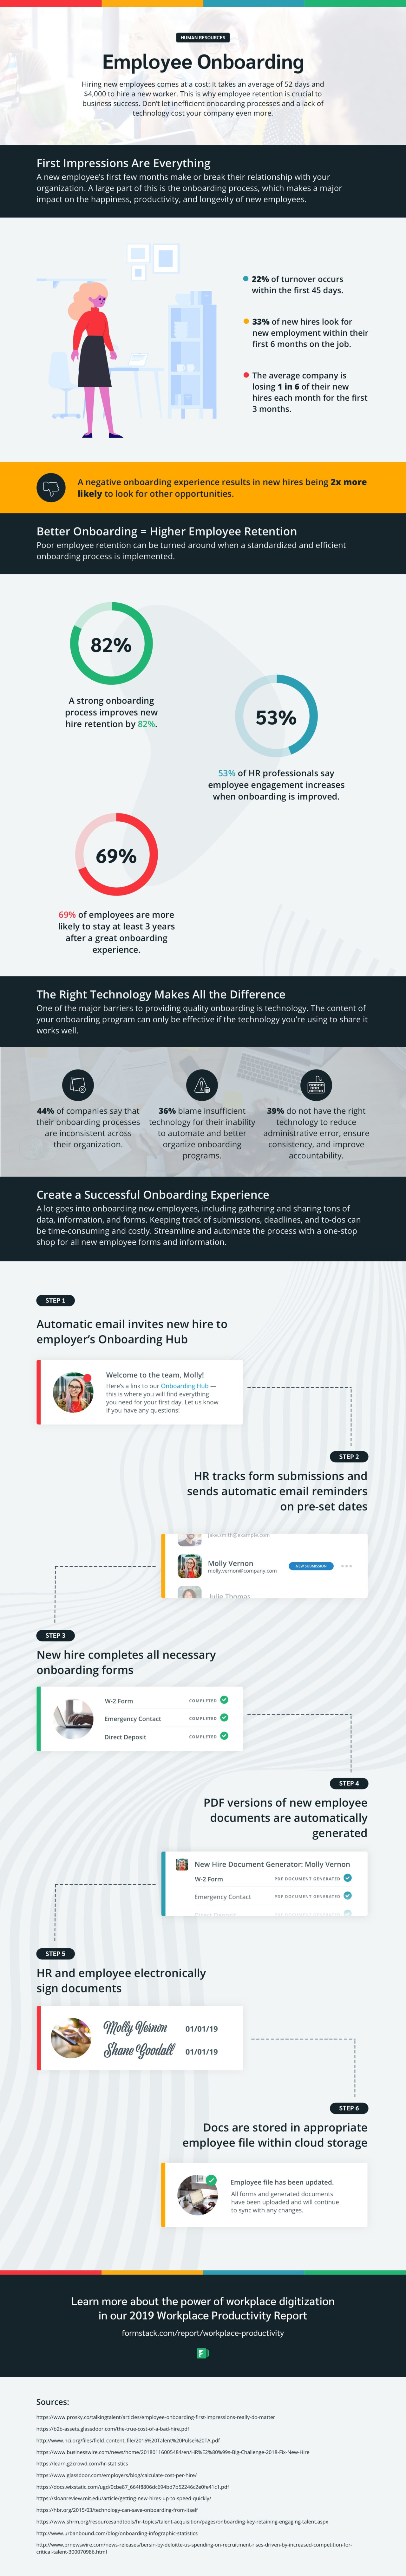 Employee onboarding automation infographic